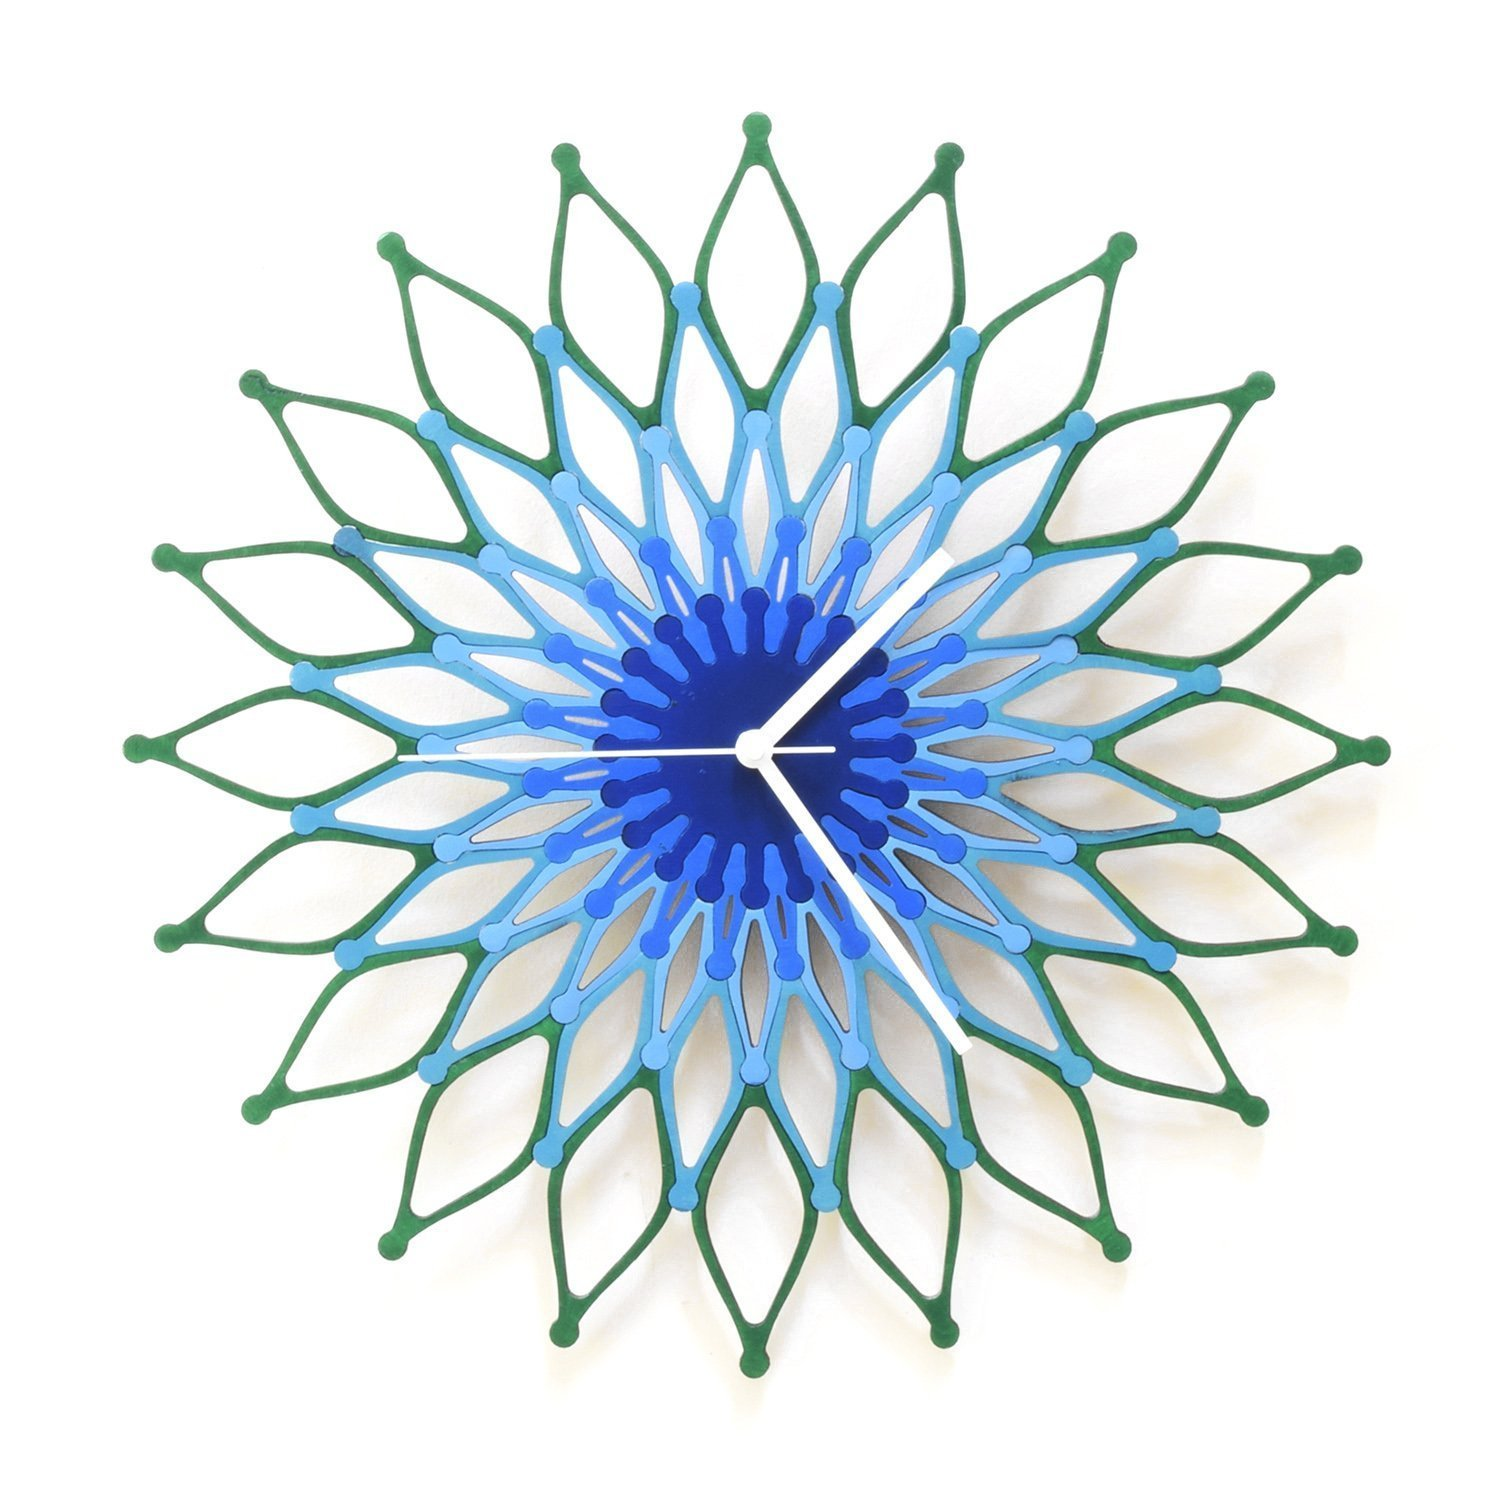 Peacock - 41cm (16) / 59cm (23½) Large Handmade Wooden Wall Clock, Sunburst Clock, a Piece of Wall Art by ardeola